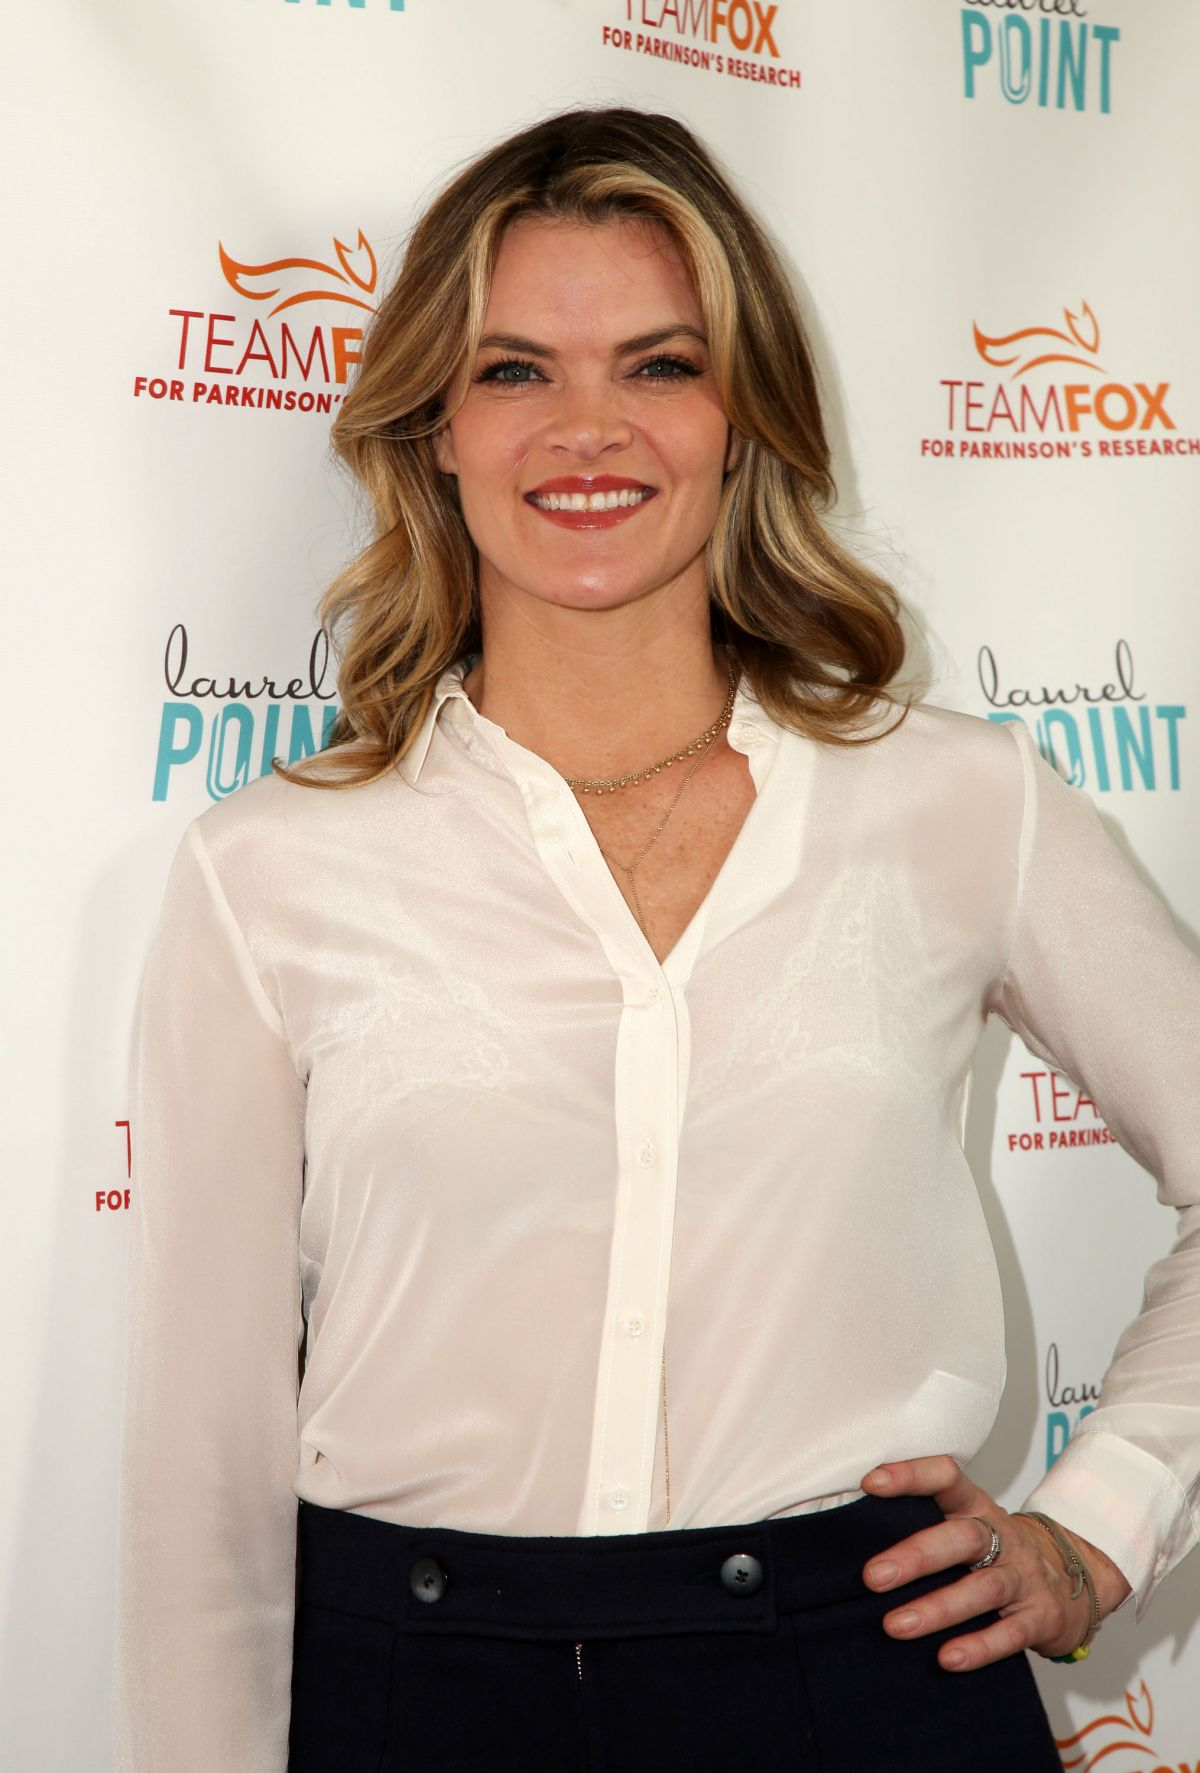 MISSI PYLE at Raising the Bar to End Parkinson's Event in Studio City 07/27/2016